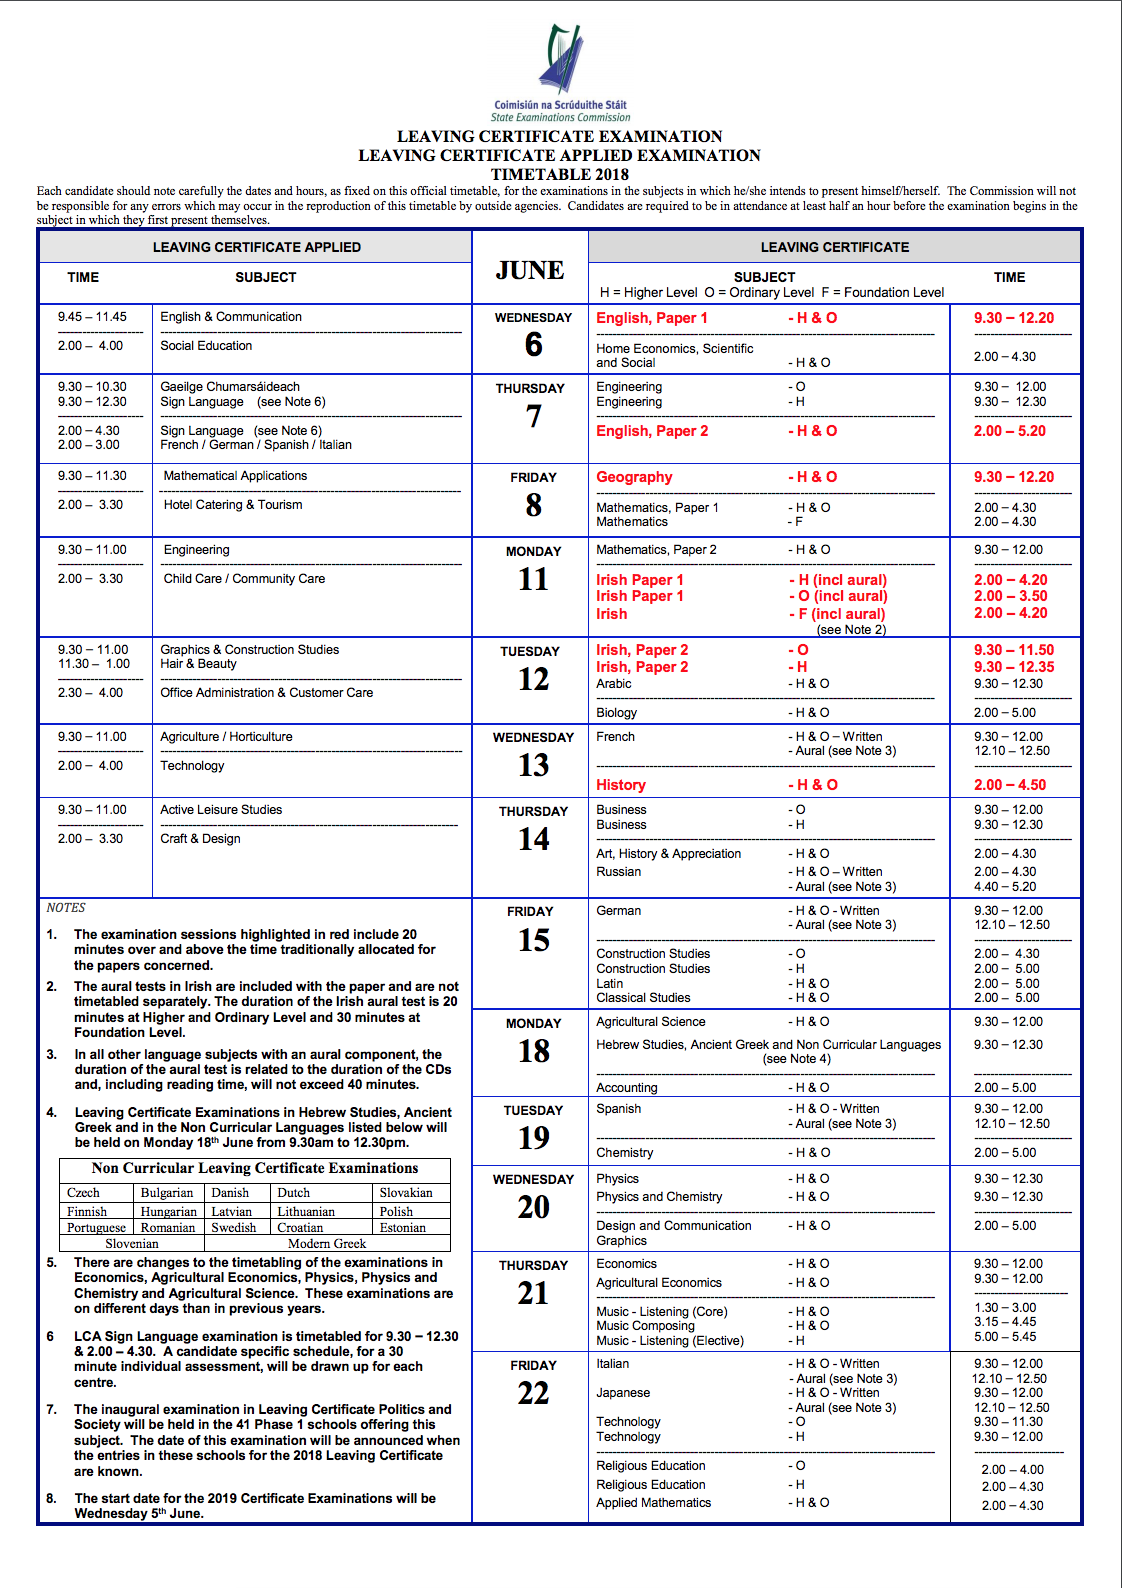 click to open: Leaving Certificate and Applied Examination Timetable 2018